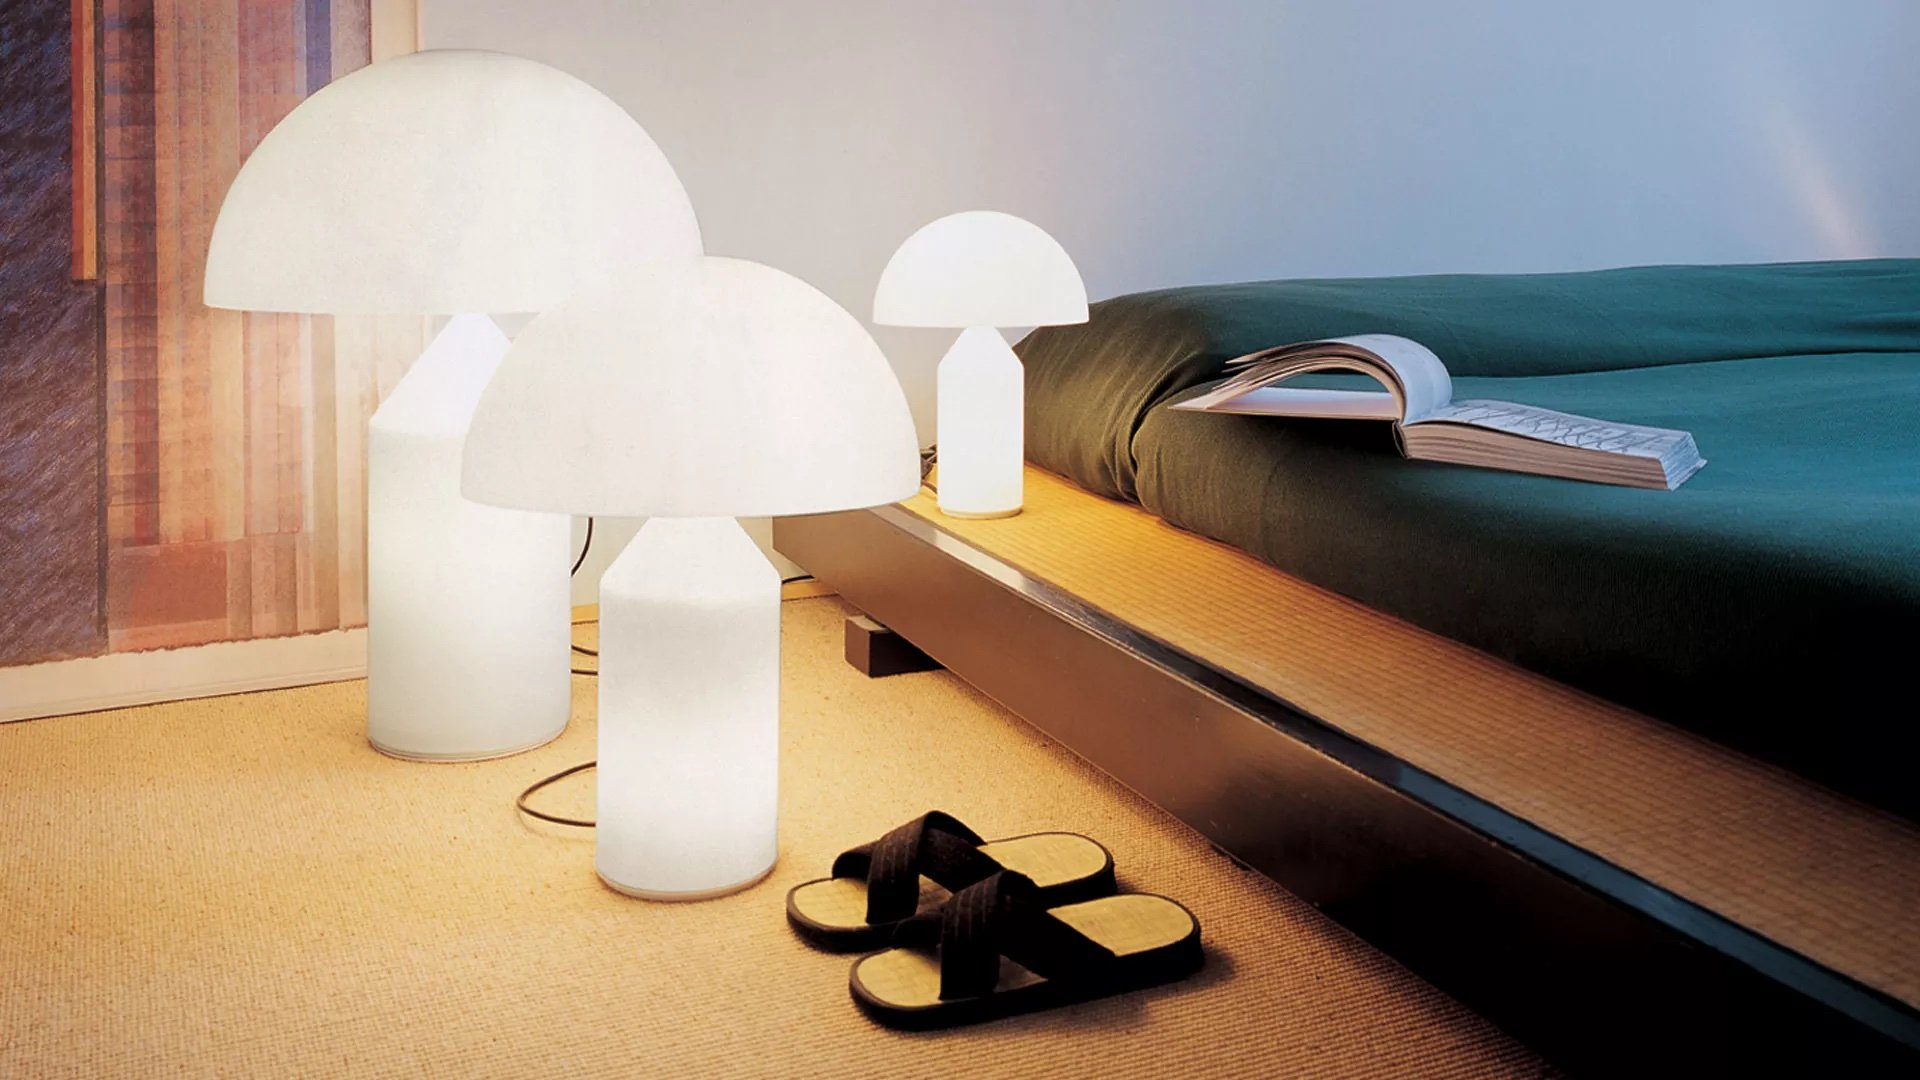 Atollo Glass Table Lamp lighting from Oluce, designed by Vico Magistretti